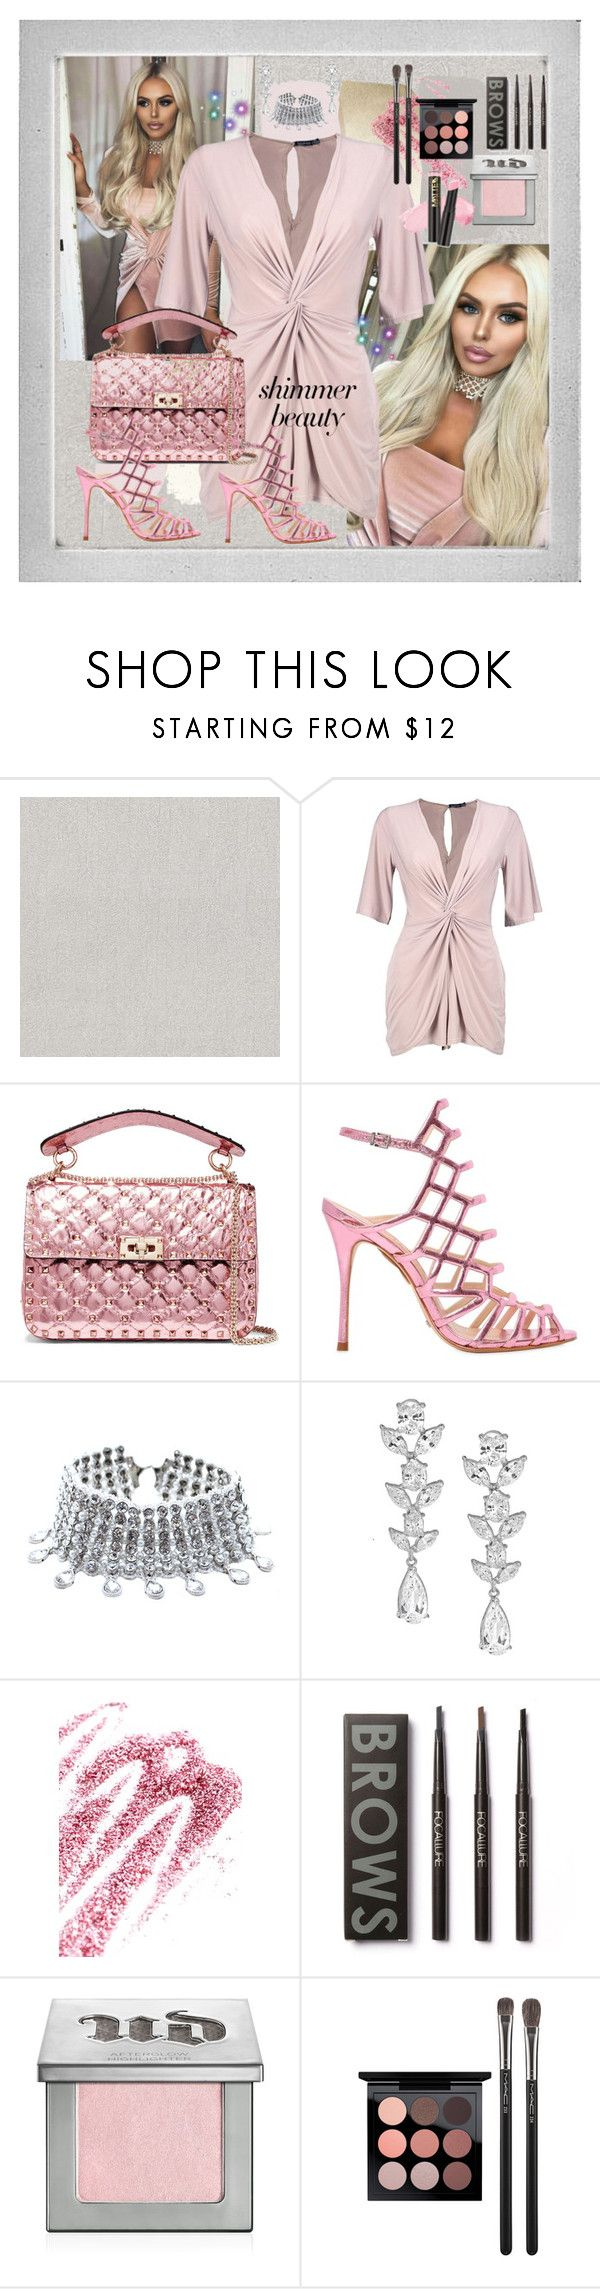 """Princess Pink Barbie"" by dobesht ❤ liked on Polyvore featuring beauty, Brewster Home Fashions, Boohoo, Valentino, Schutz, Child Of Wild, Saks Fifth Avenue, Obsessive Compulsive Cosmetics, Urban Decay and MAC Cosmetics"